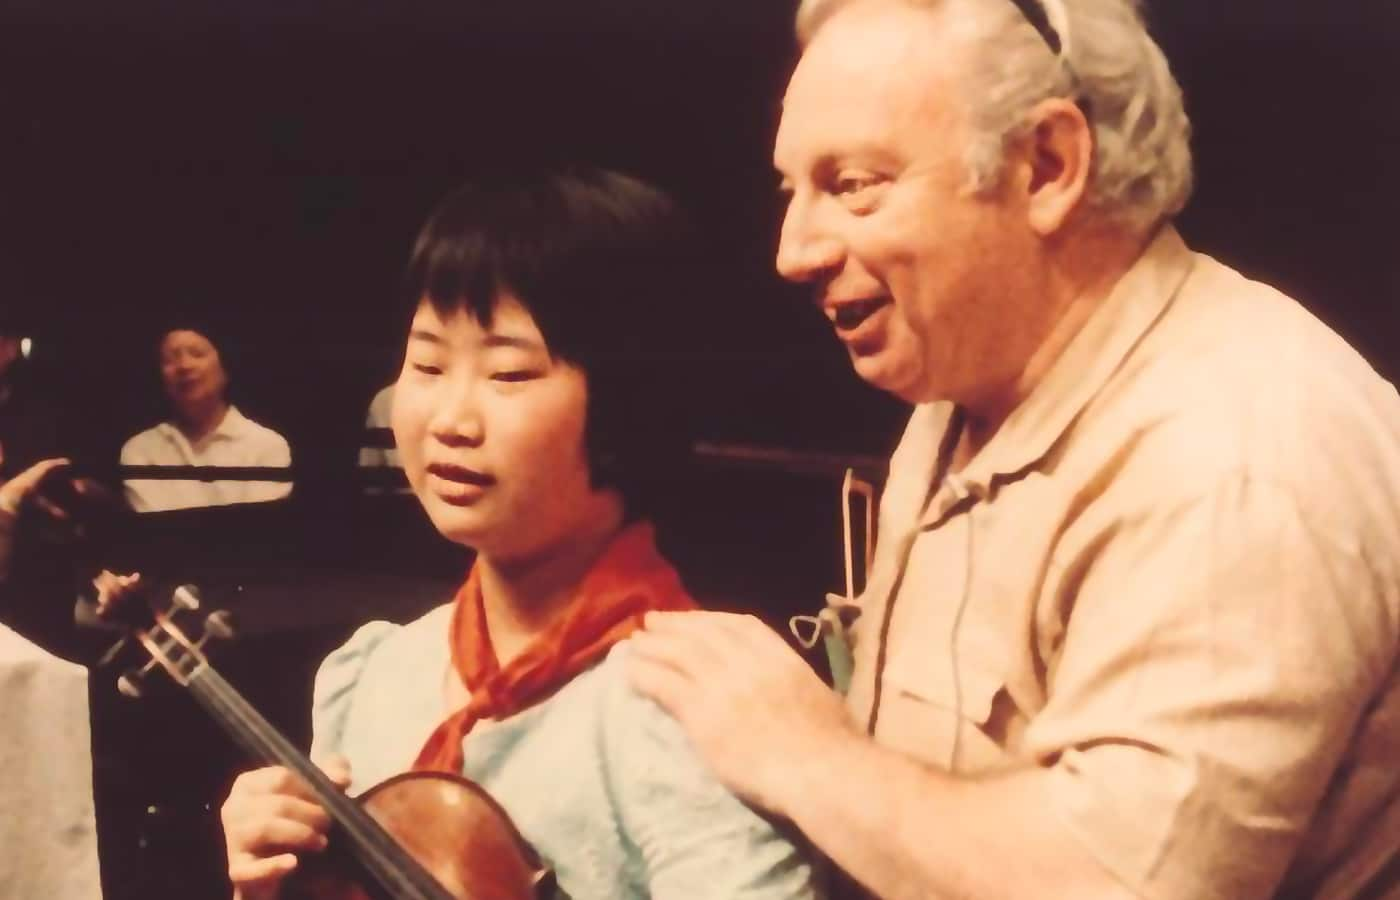 Film still of Isaac Stern with a student in the documentary From Mao to Mozart — Isaac Stern in China